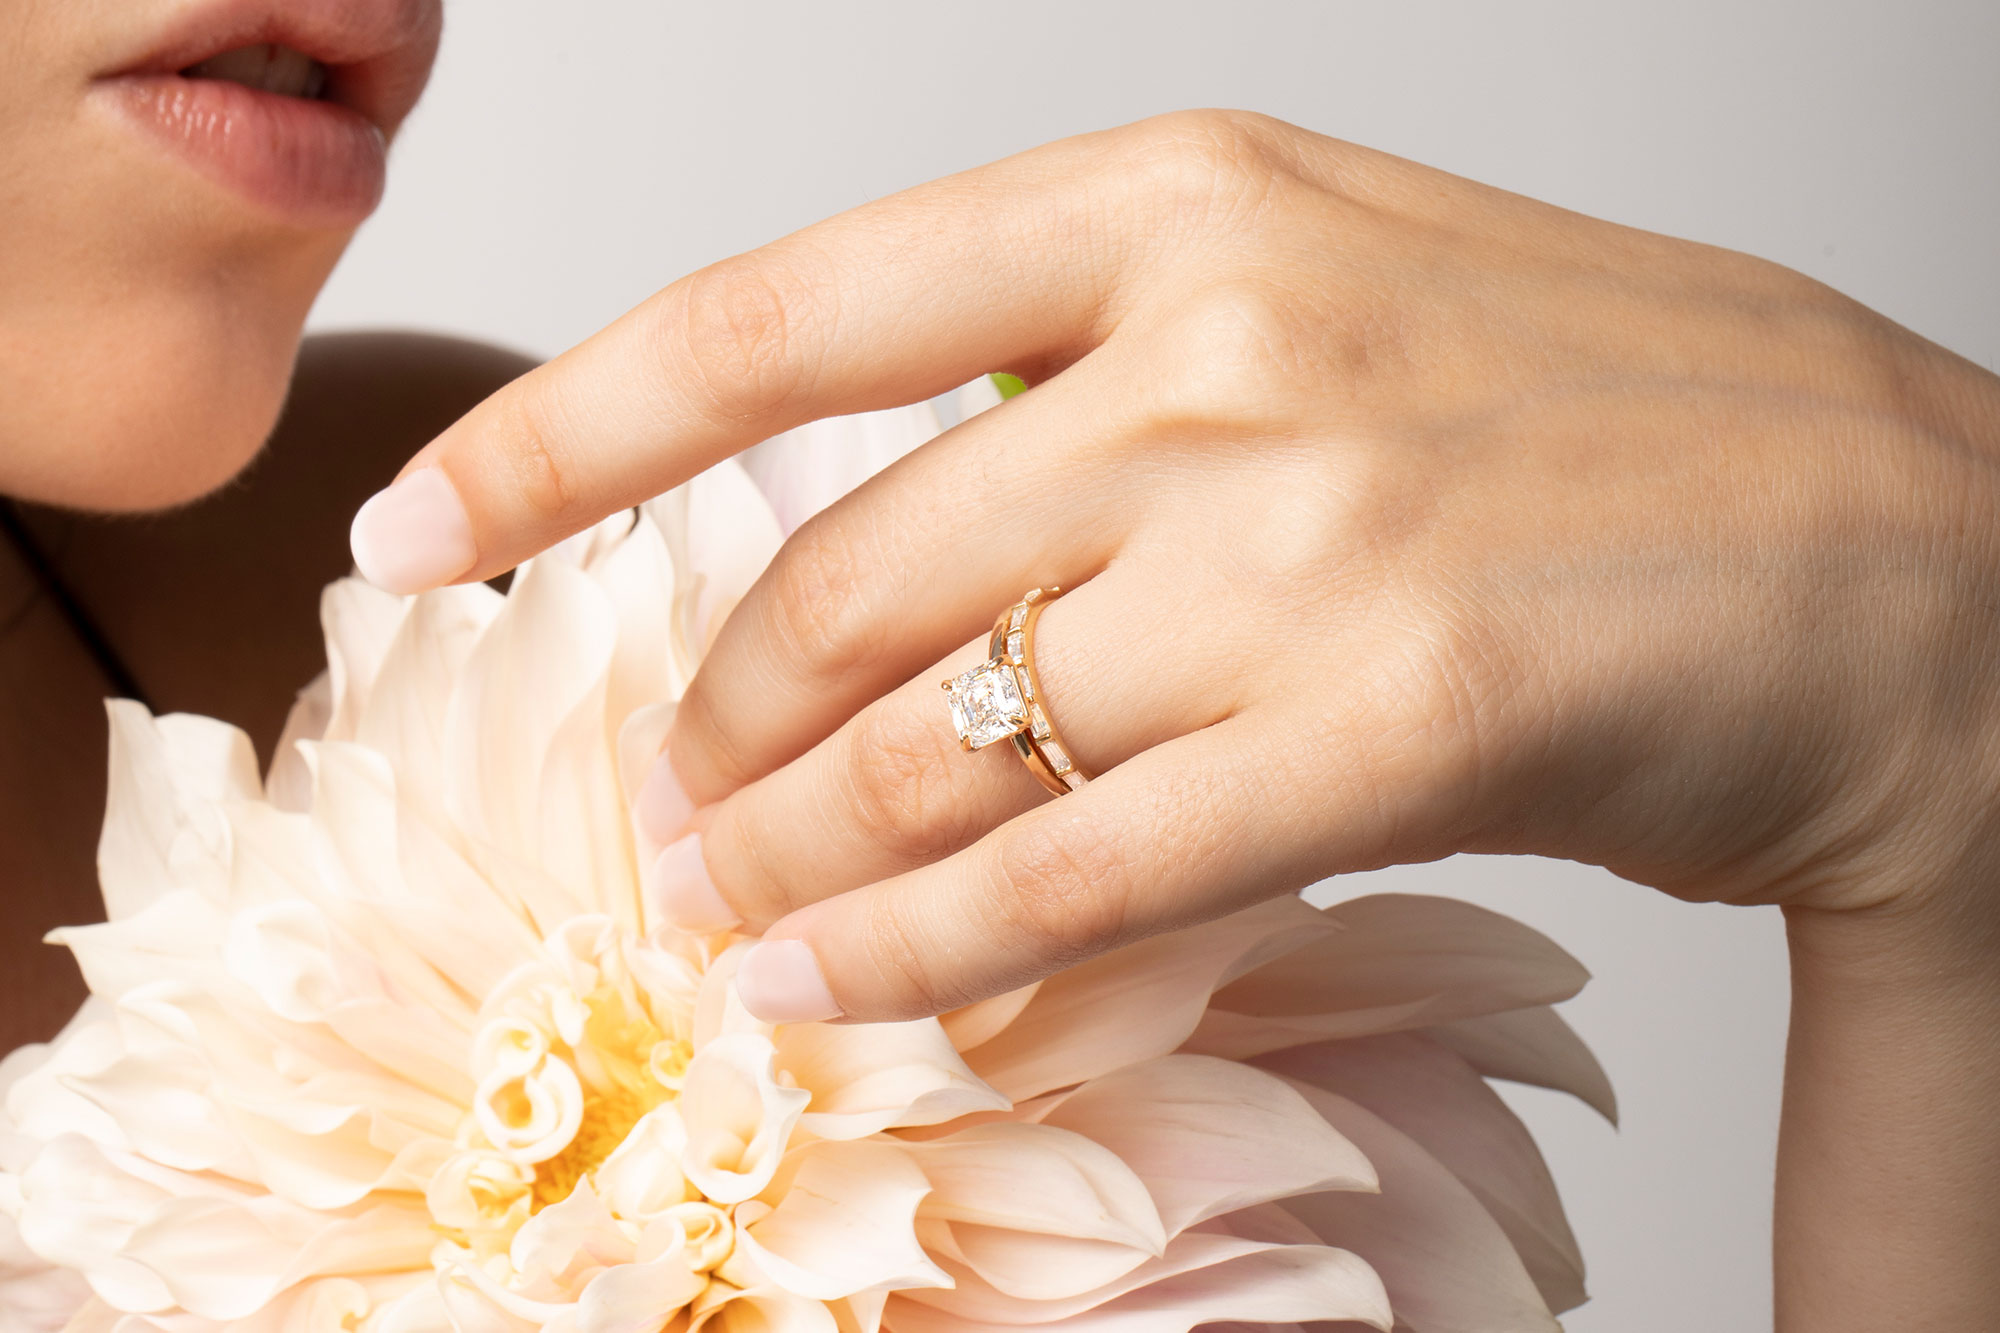 The signature asscher engagement ring with yellow gold band